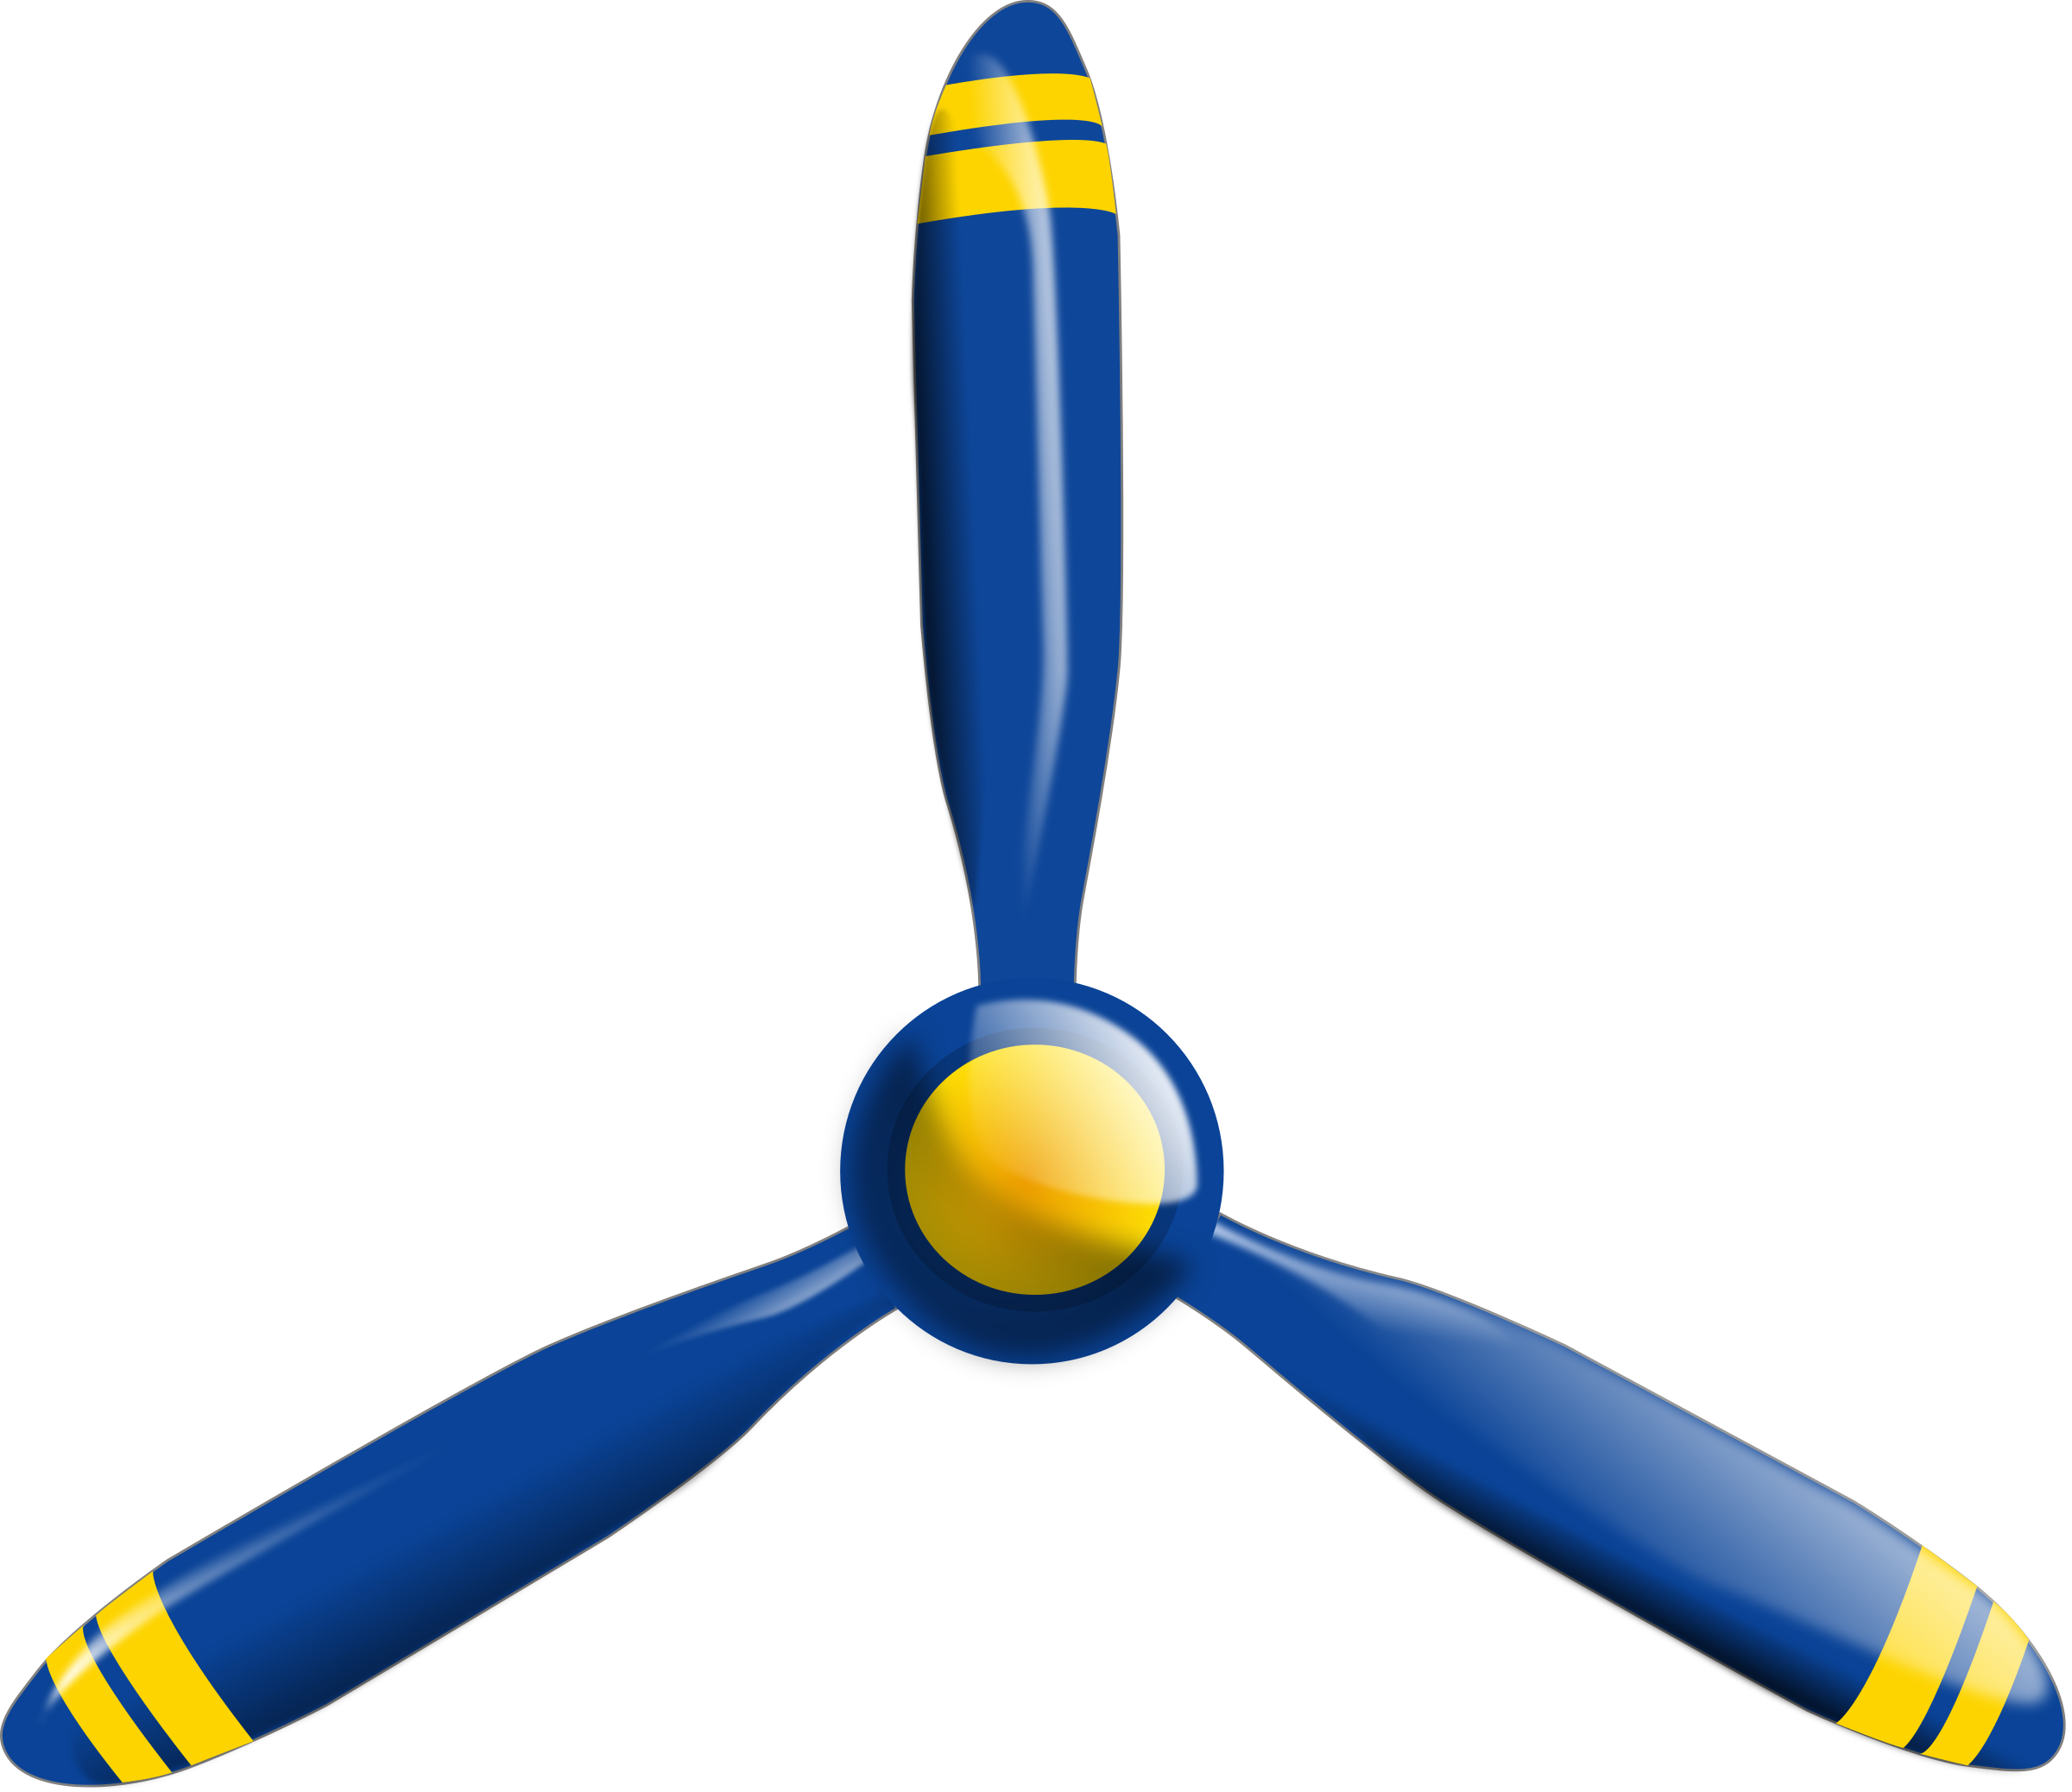 Propeller Clip Art : Propeller vector clipart image free stock photo public